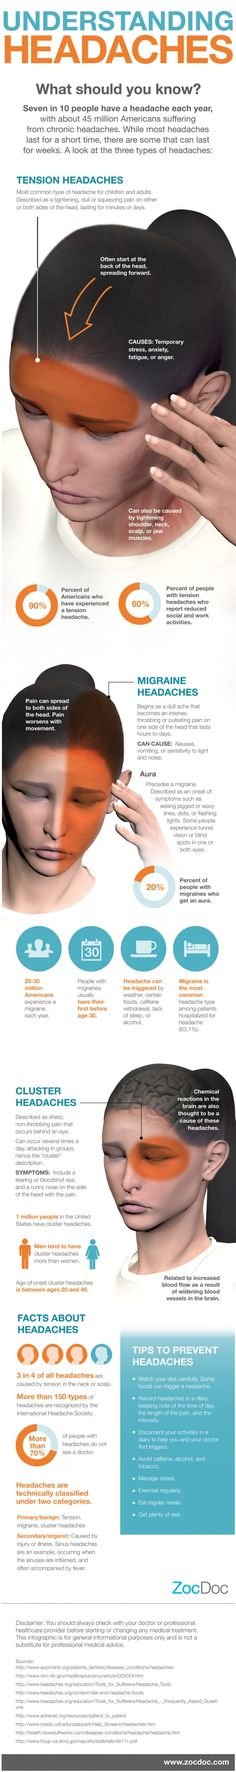 Types Of Headaches Infographic - been having cluster headaches it seems